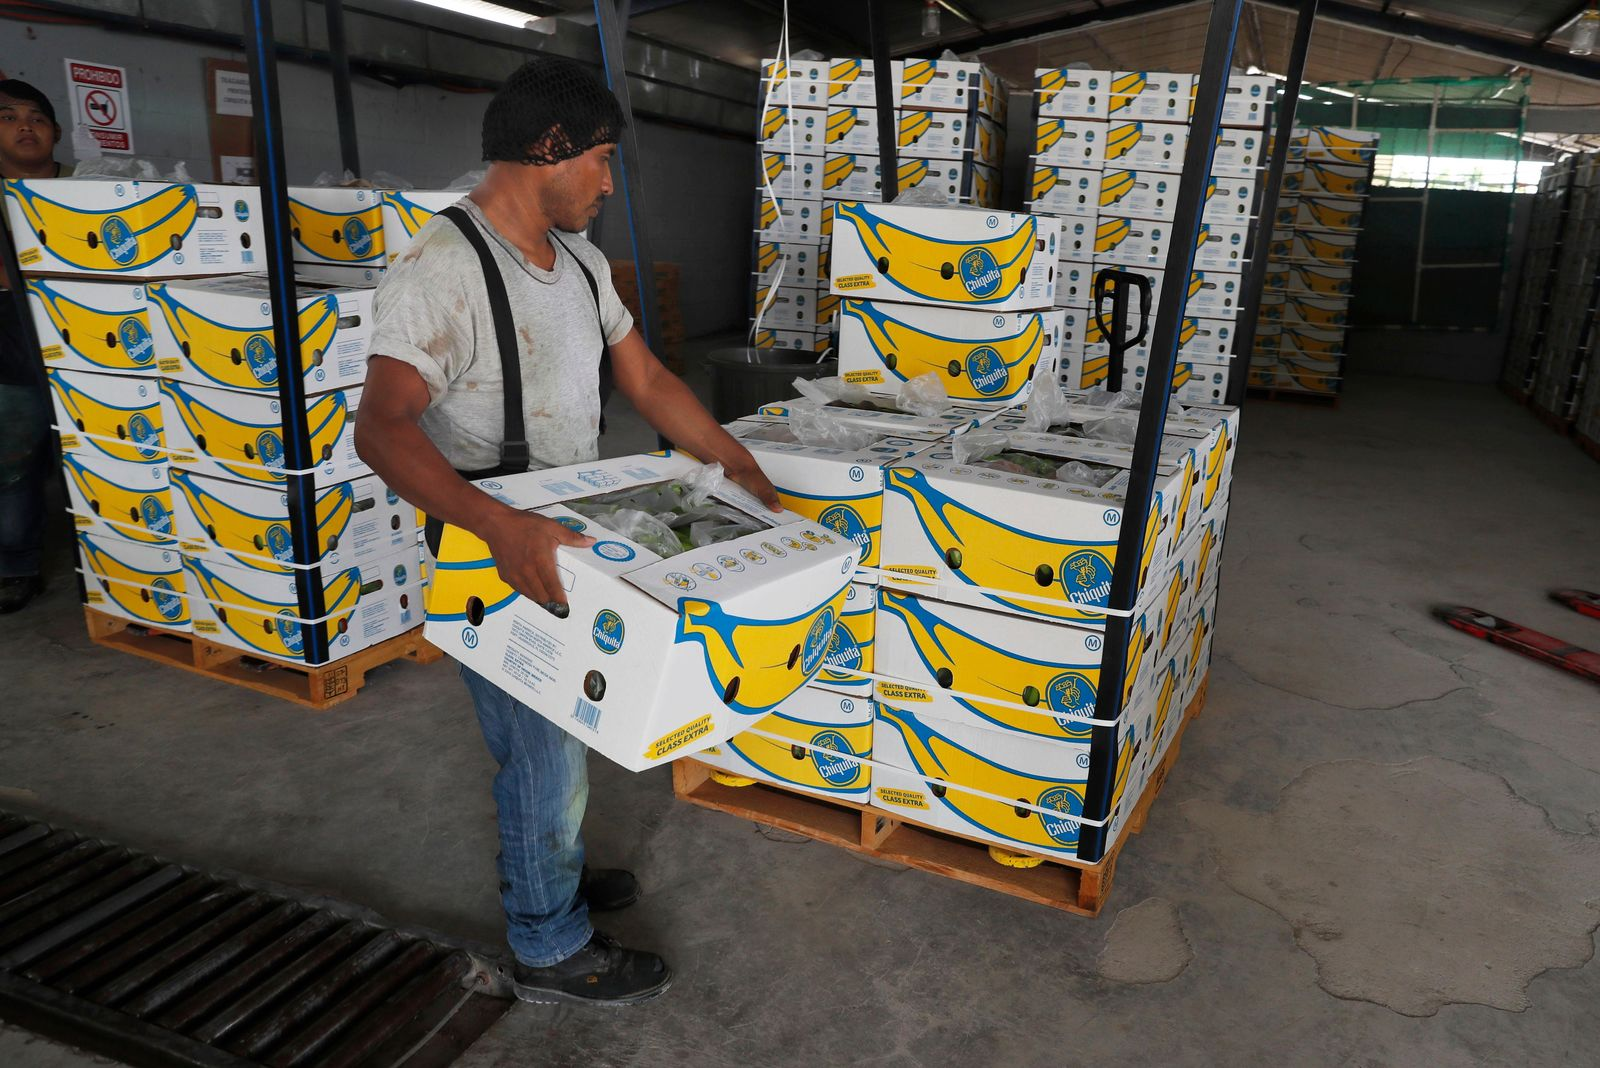 FILE - In this May 31, 2019 file photo, =a worker stacks a box of freshly harvested Chiquita bananas to be exported, at a farm in Ciudad Hidalgo, Chiapas state, Mexico. President Donald Trump plans to impose 5% tariffs on Mexican imports starting June 10 and to ratchet them up to 25% by Oct. 1 if the Mexicans don't do more to stop the surge of Central American migrants across the southern U.S. border.  (AP Photo/Marco Ugarte, File)